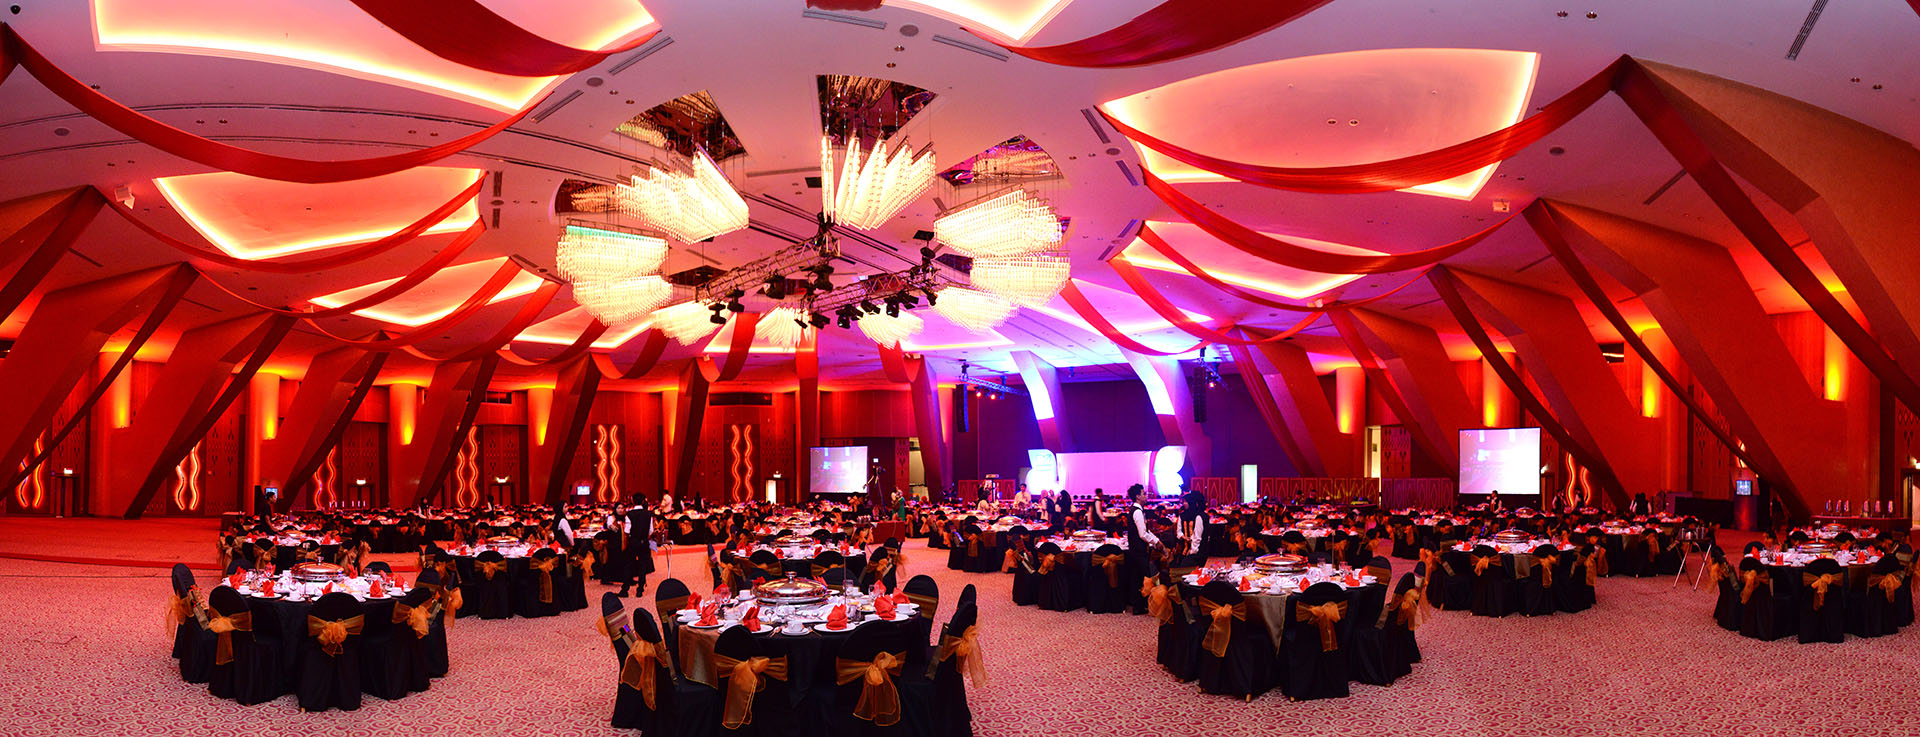 kl event venue